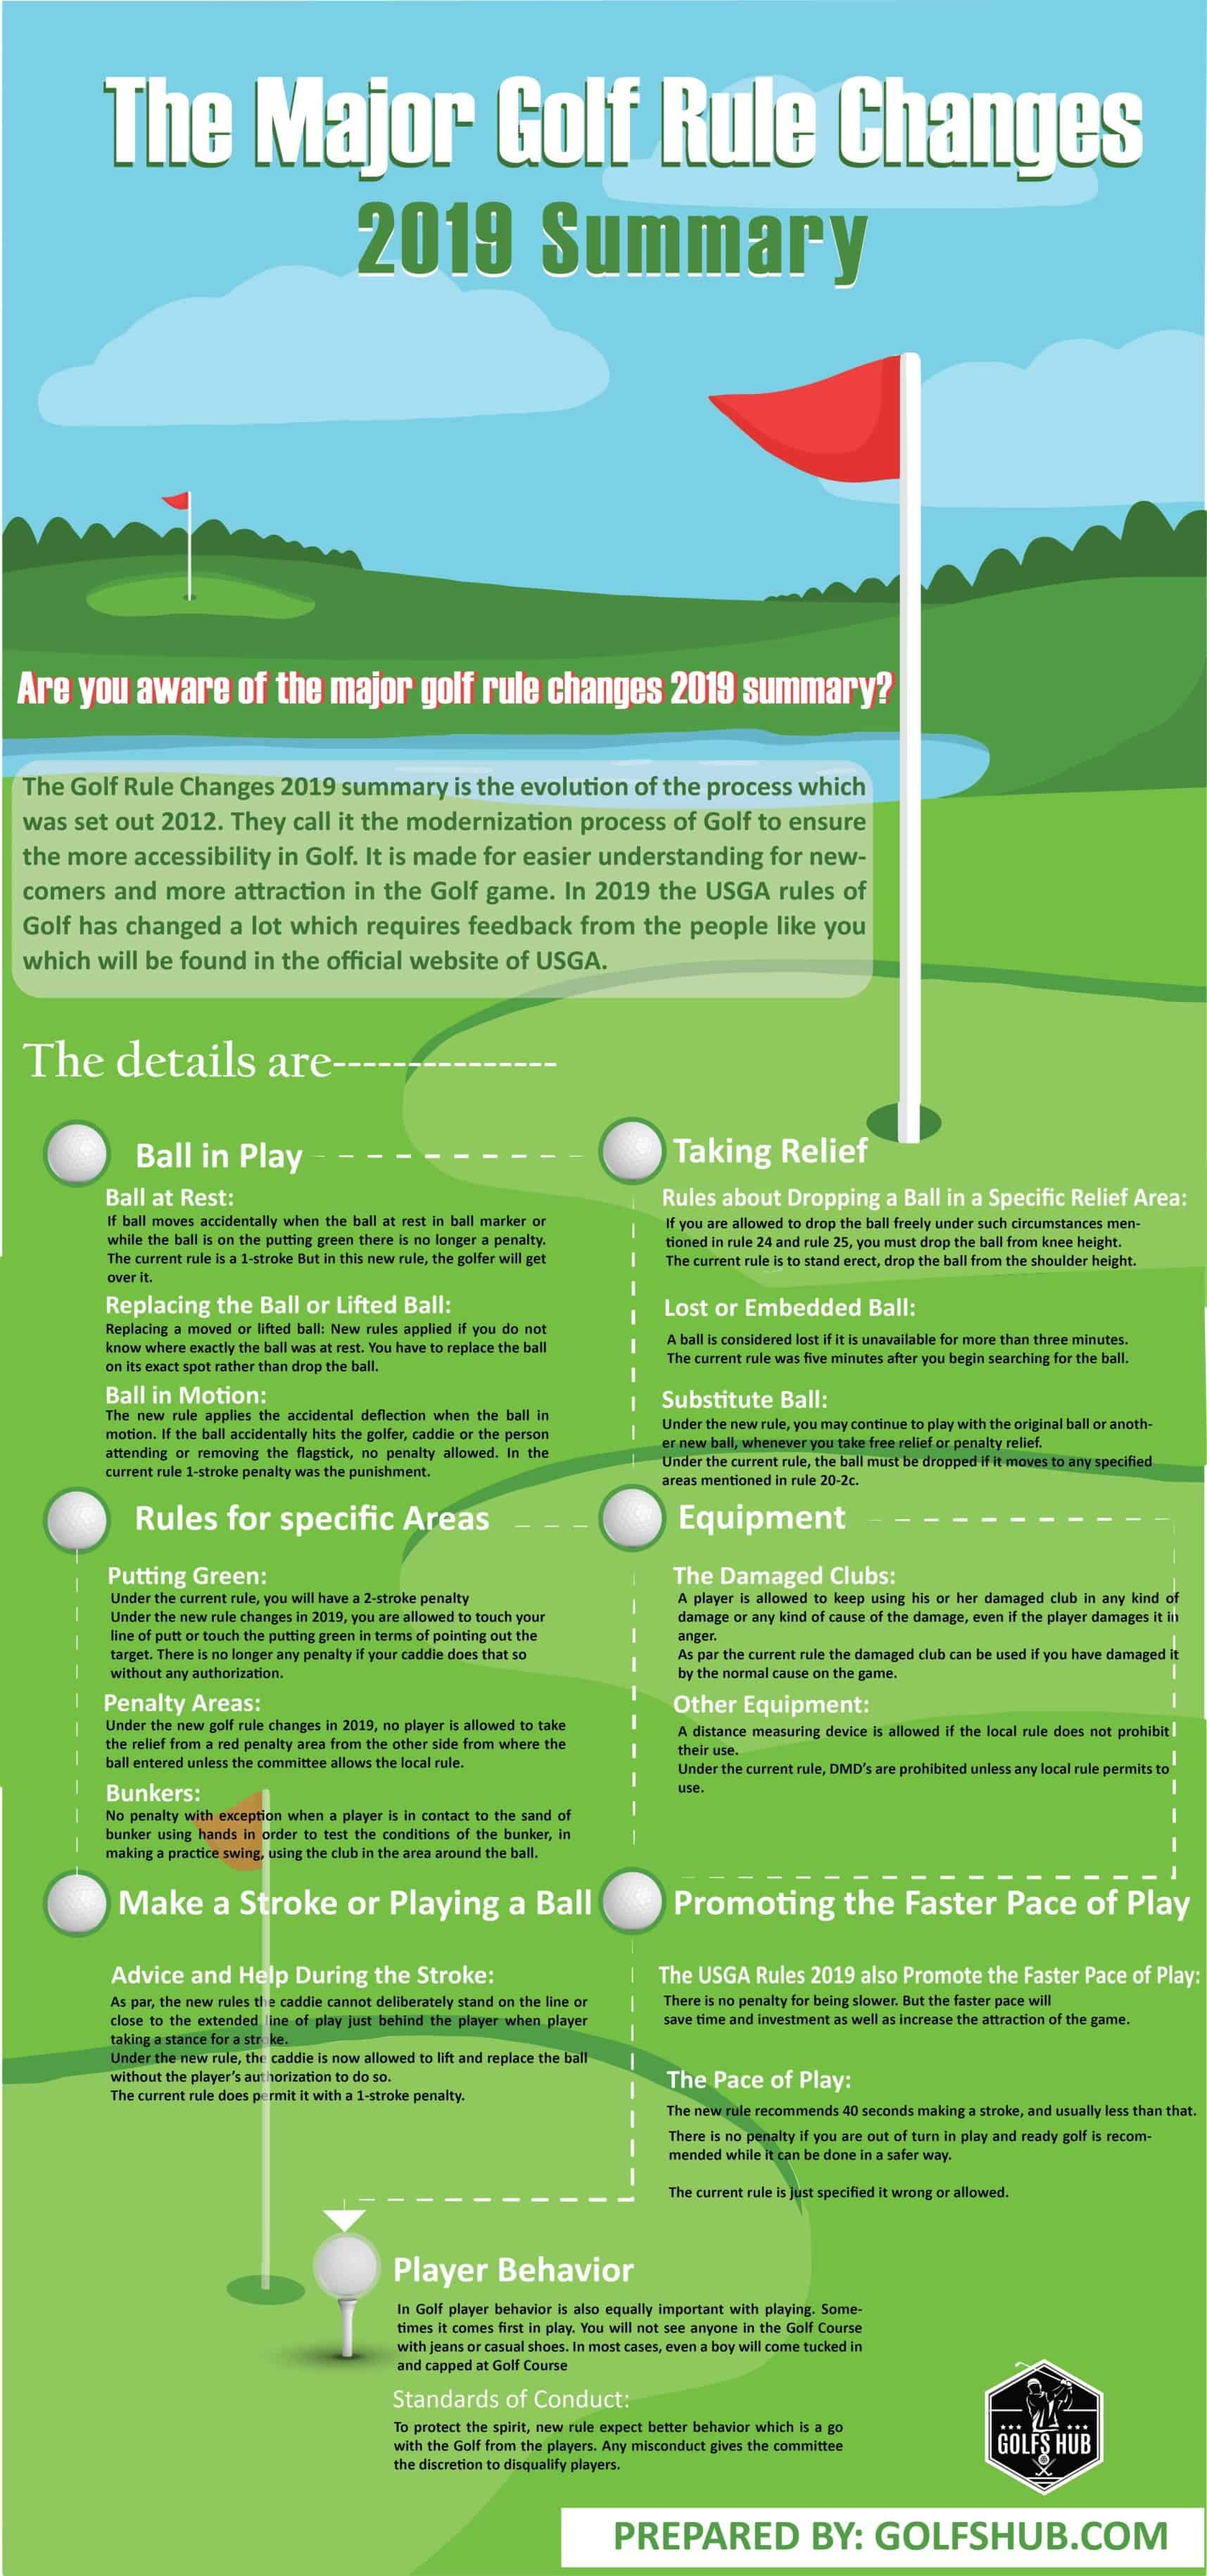 12 Most Common Golf Swing Tips (You must know all of them